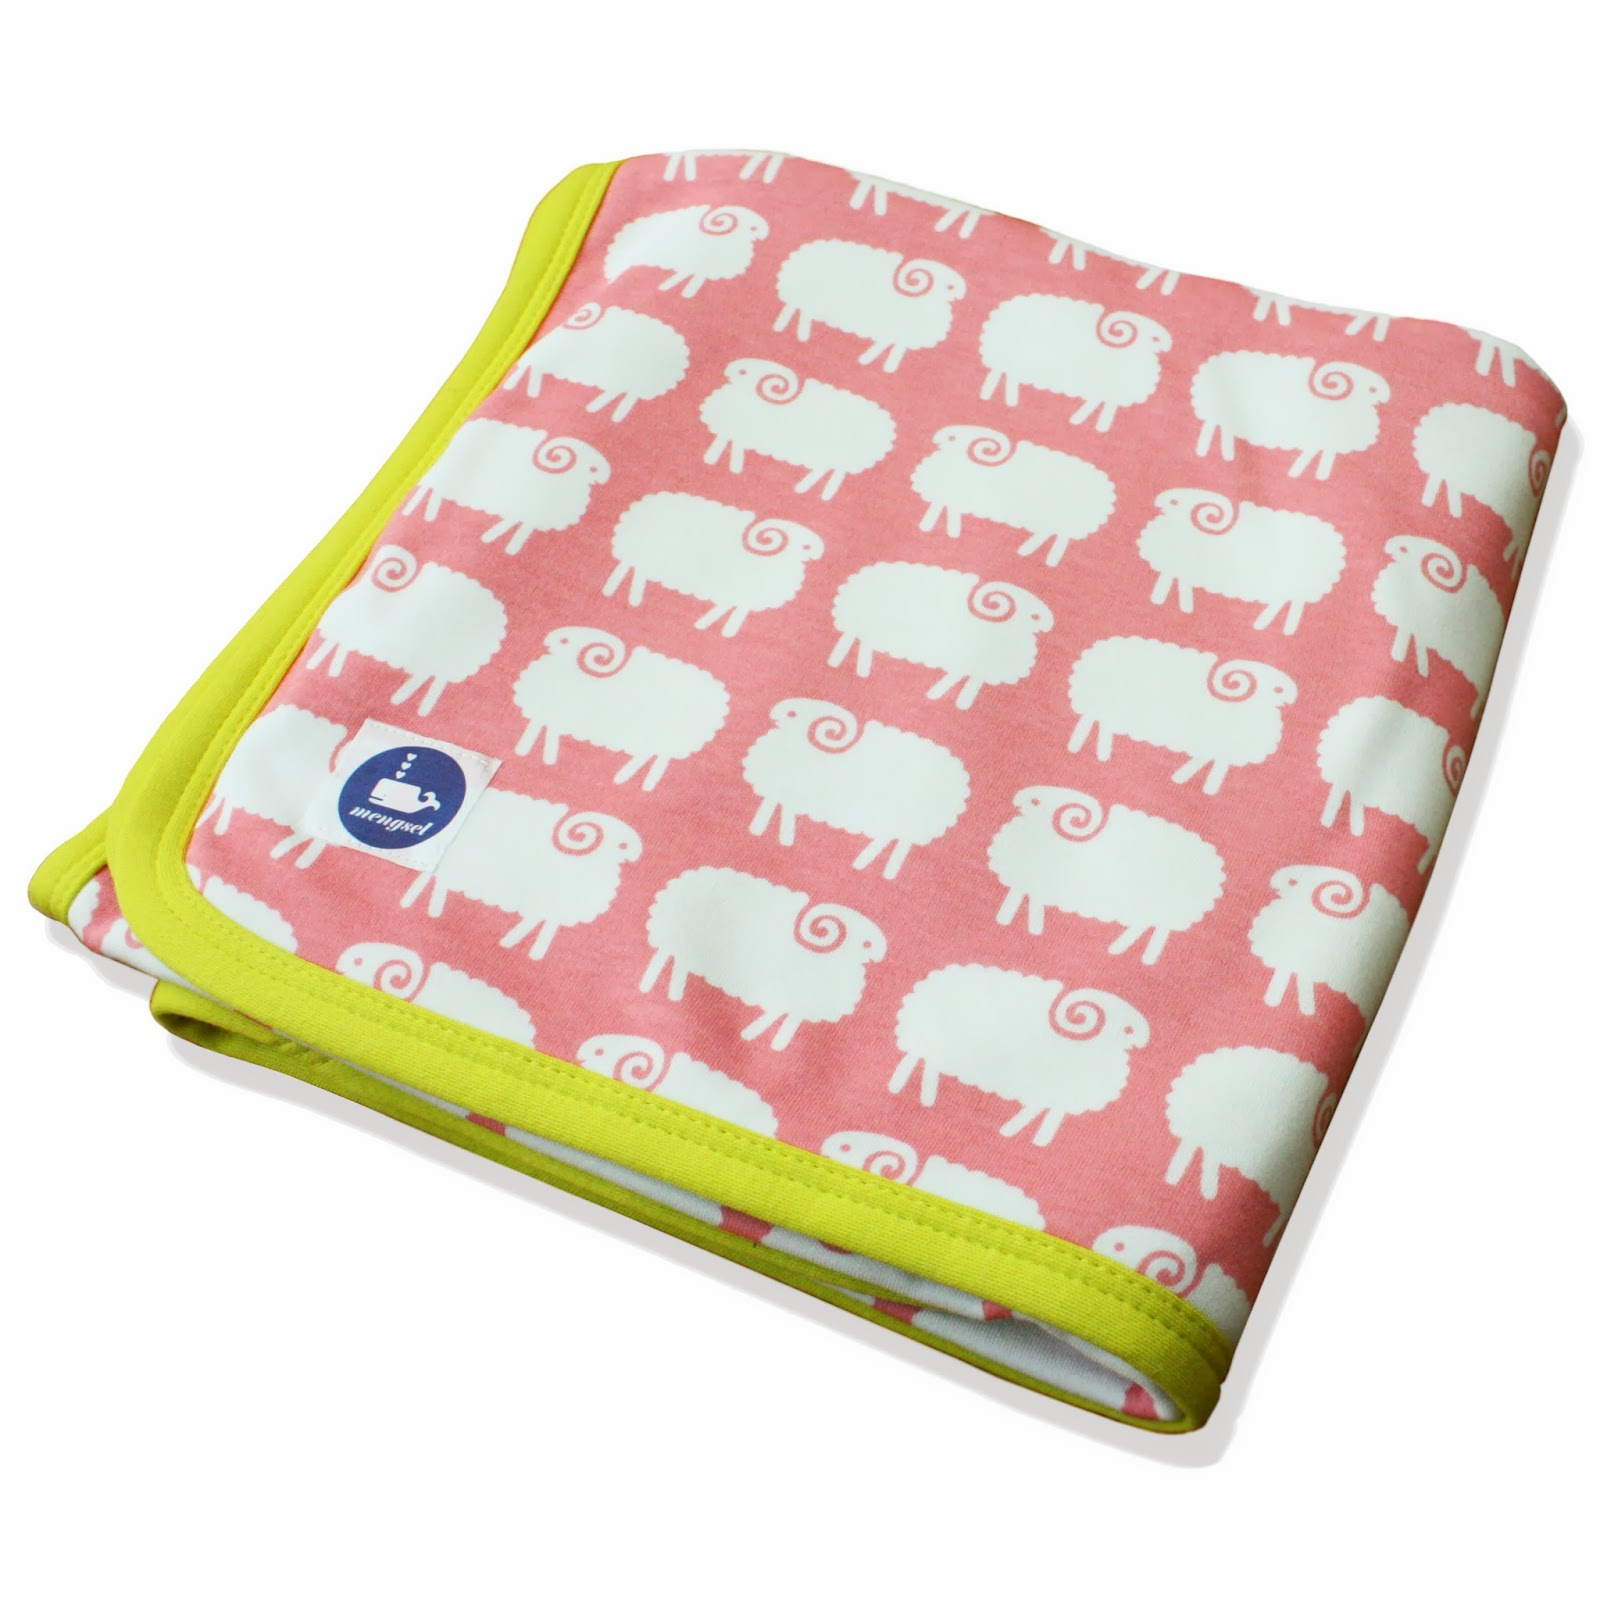 http://mengsel.com/collections/frontpage/products/sheep-baby-blanket